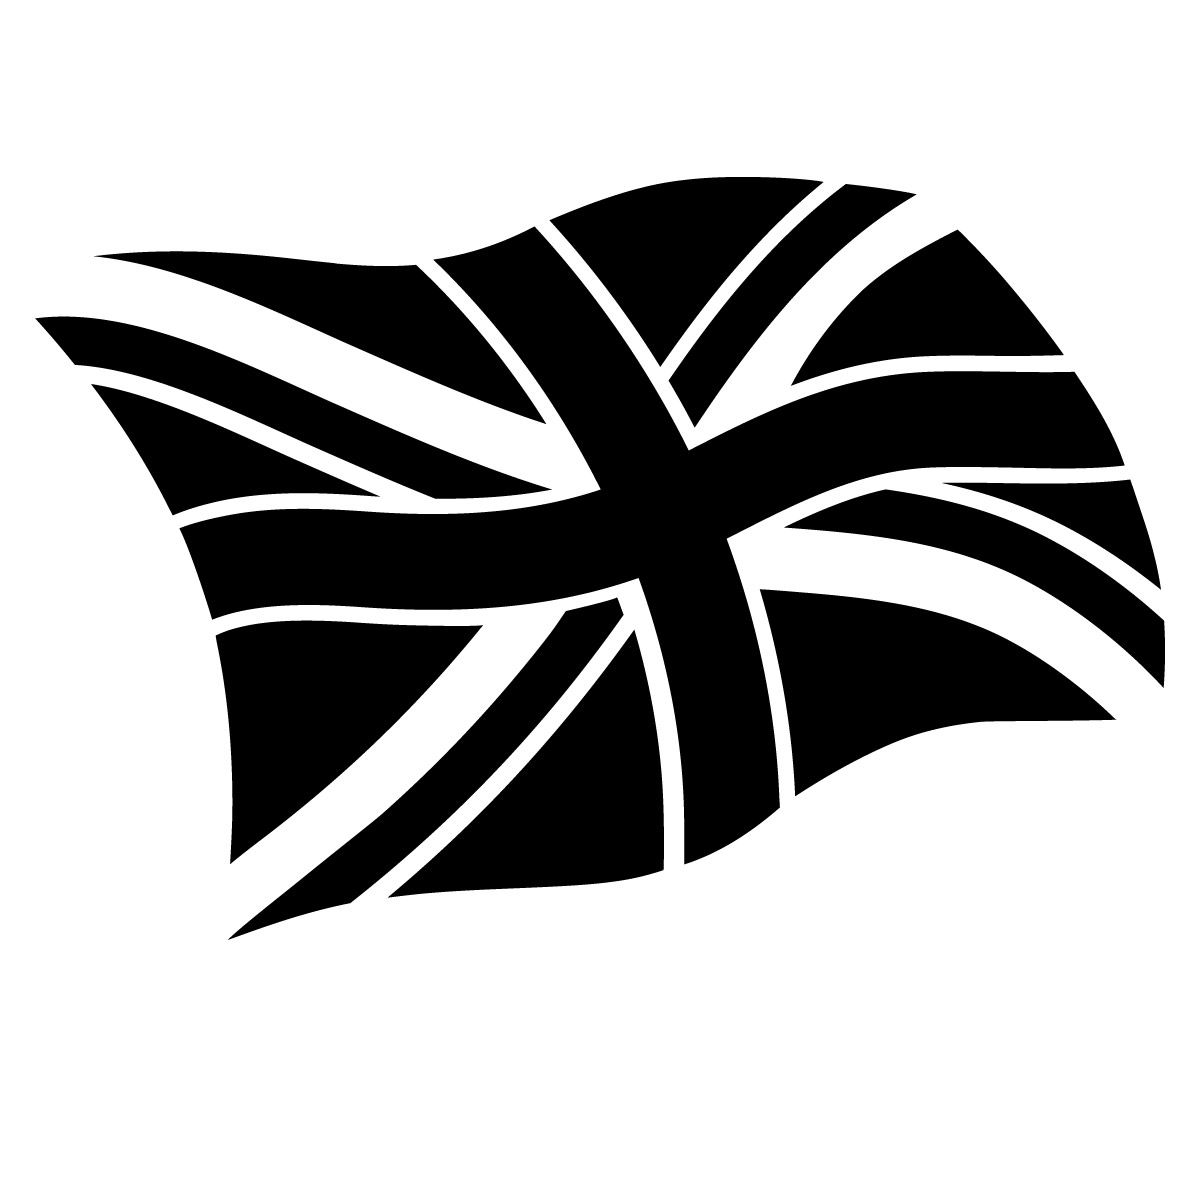 At Home Design Quarter Contact Union Jack United Kingdom Flag Stencil For Glitter Tattoos